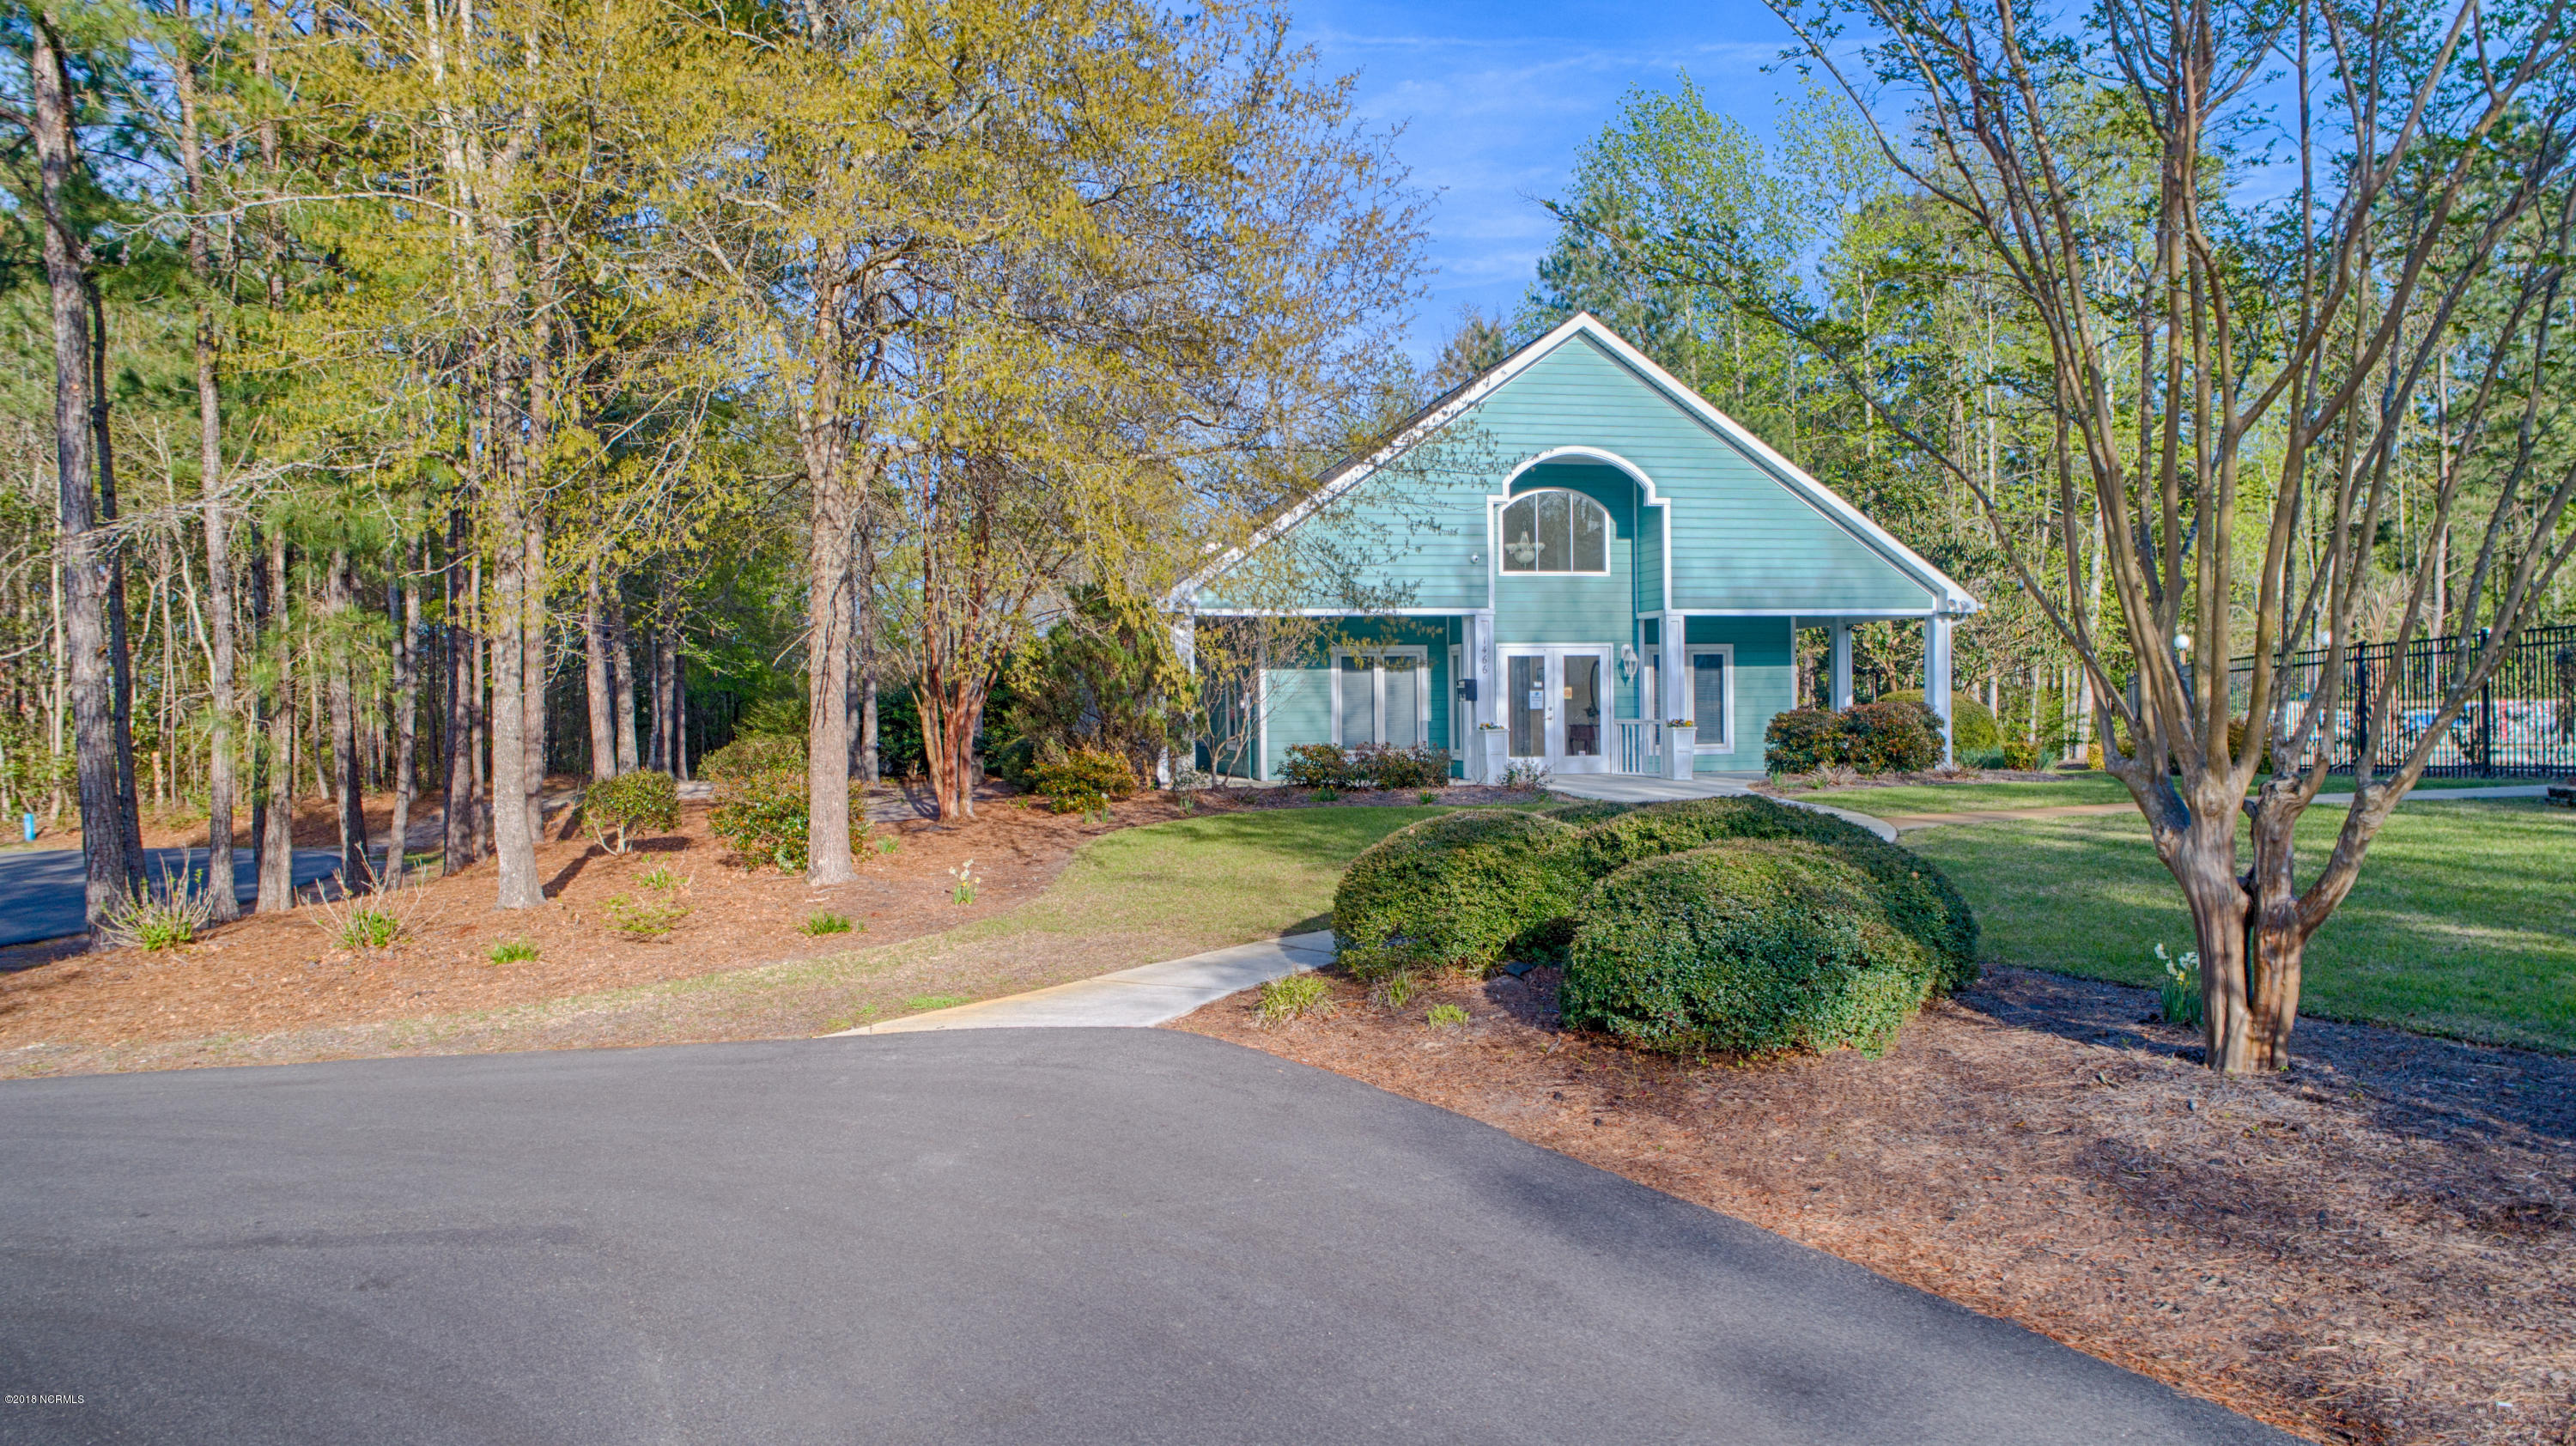 104 Killdeer Drive, Hampstead, North Carolina, 4 Bedrooms Bedrooms, 13 Rooms Rooms,3 BathroomsBathrooms,Single family residence,For sale,Killdeer,100105904